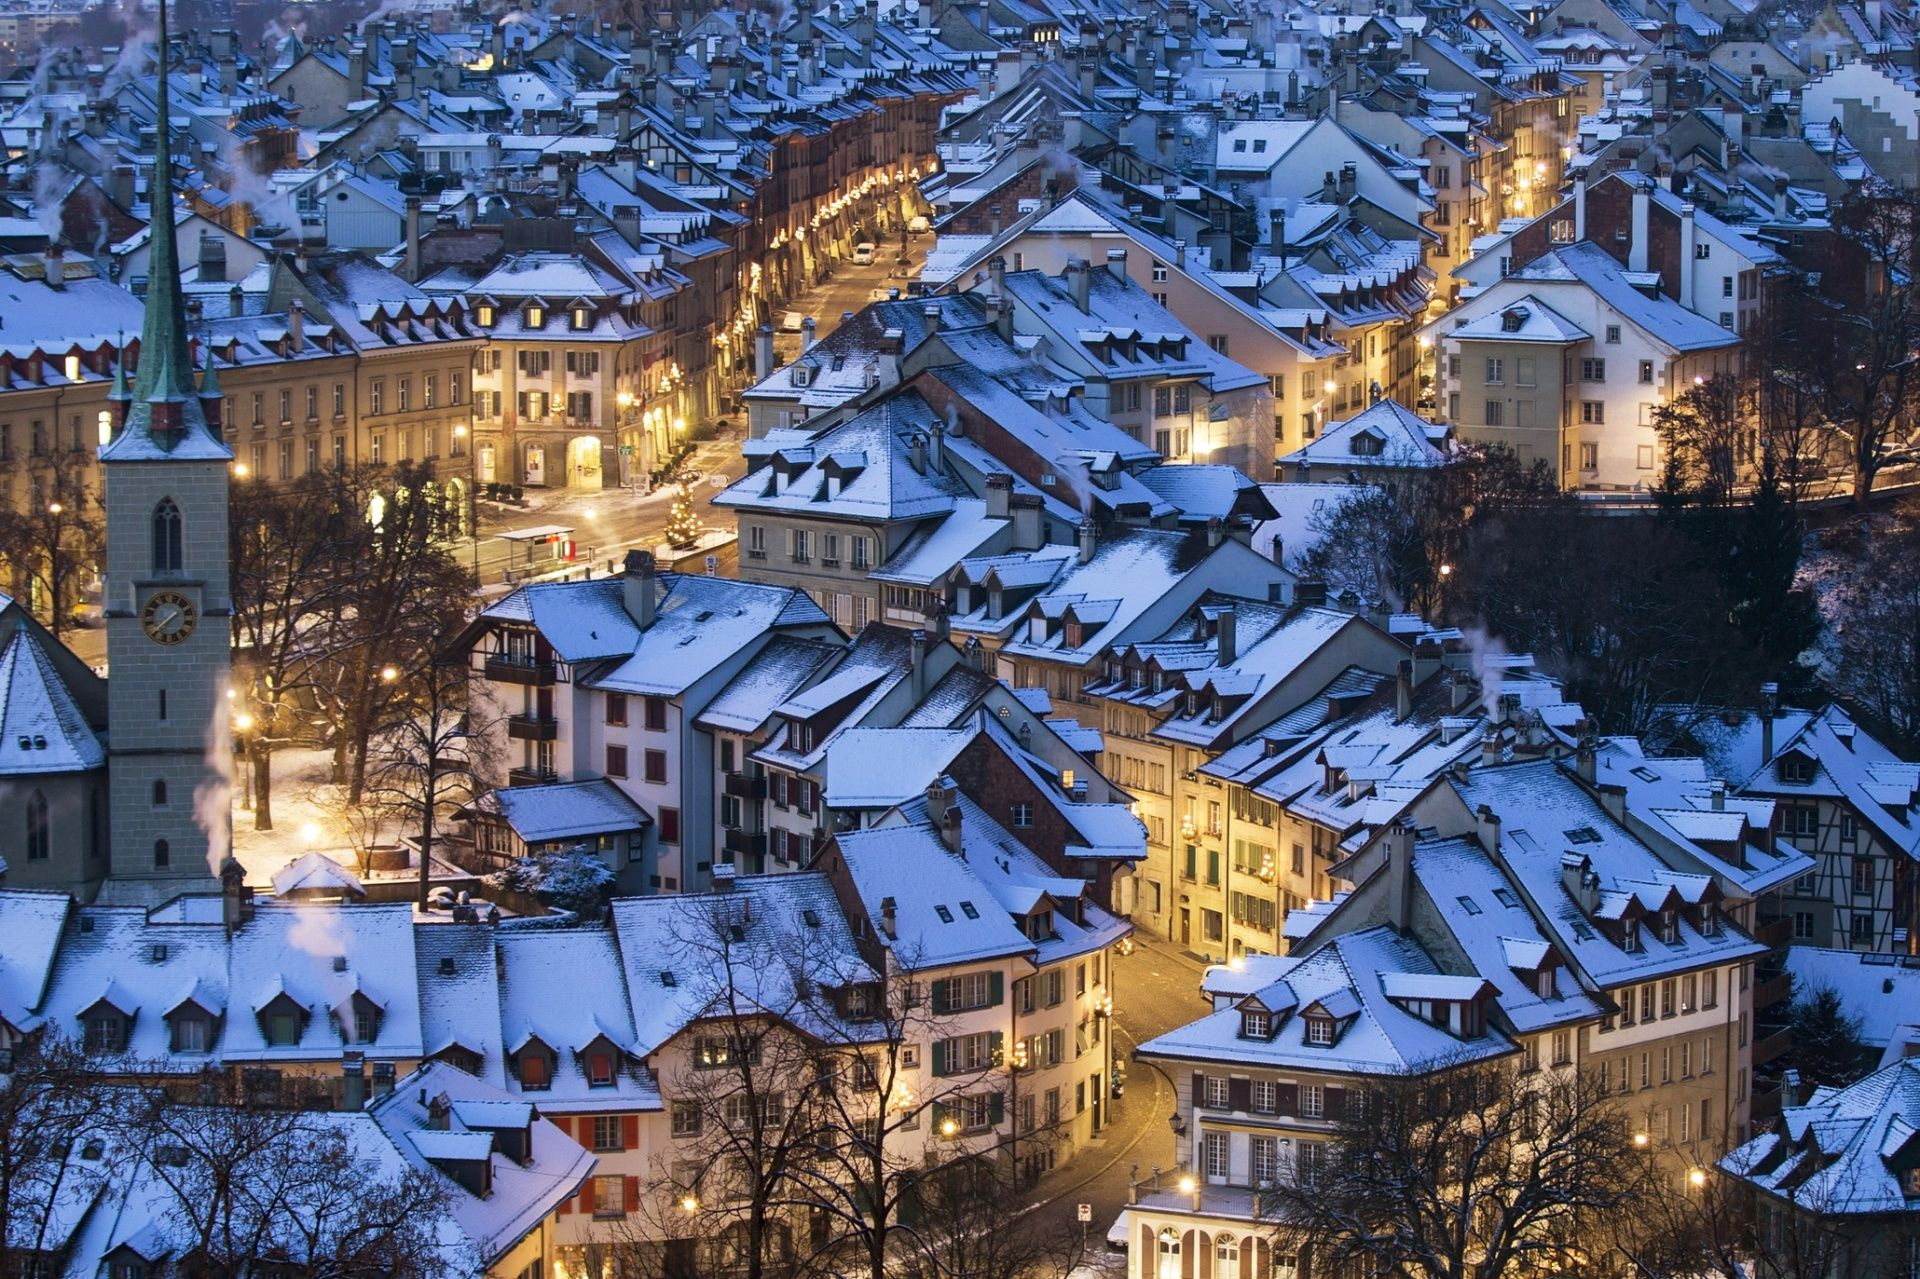 Bern, Switzerland  Snow covers the roofs of the houses in the city Photograph: Peter Klaunzer